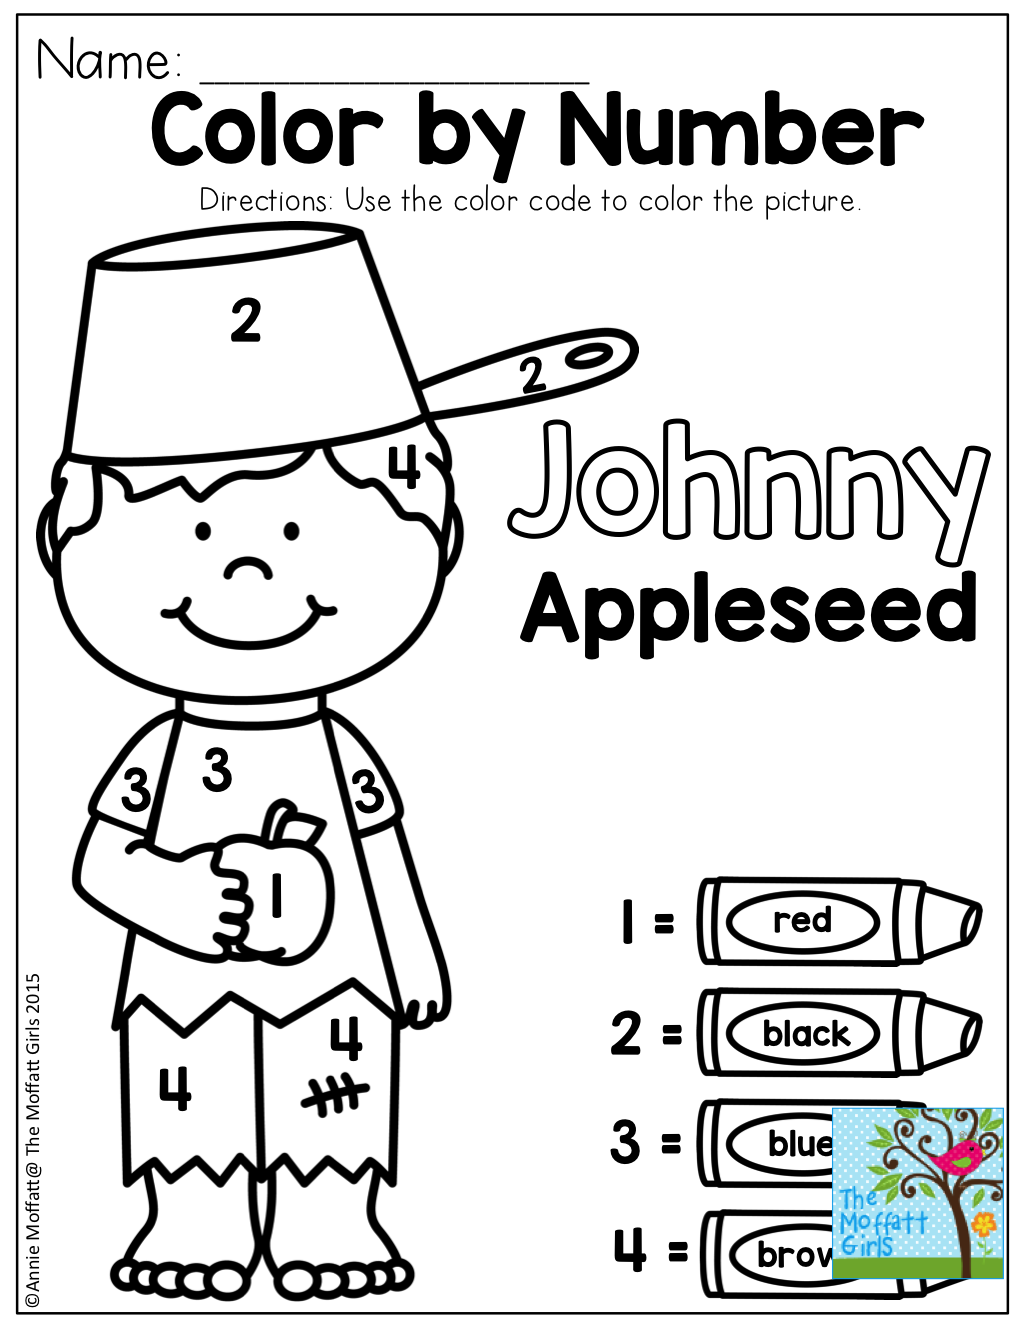 Color by Number with Johnny Appleseed! TONS of fun printables to